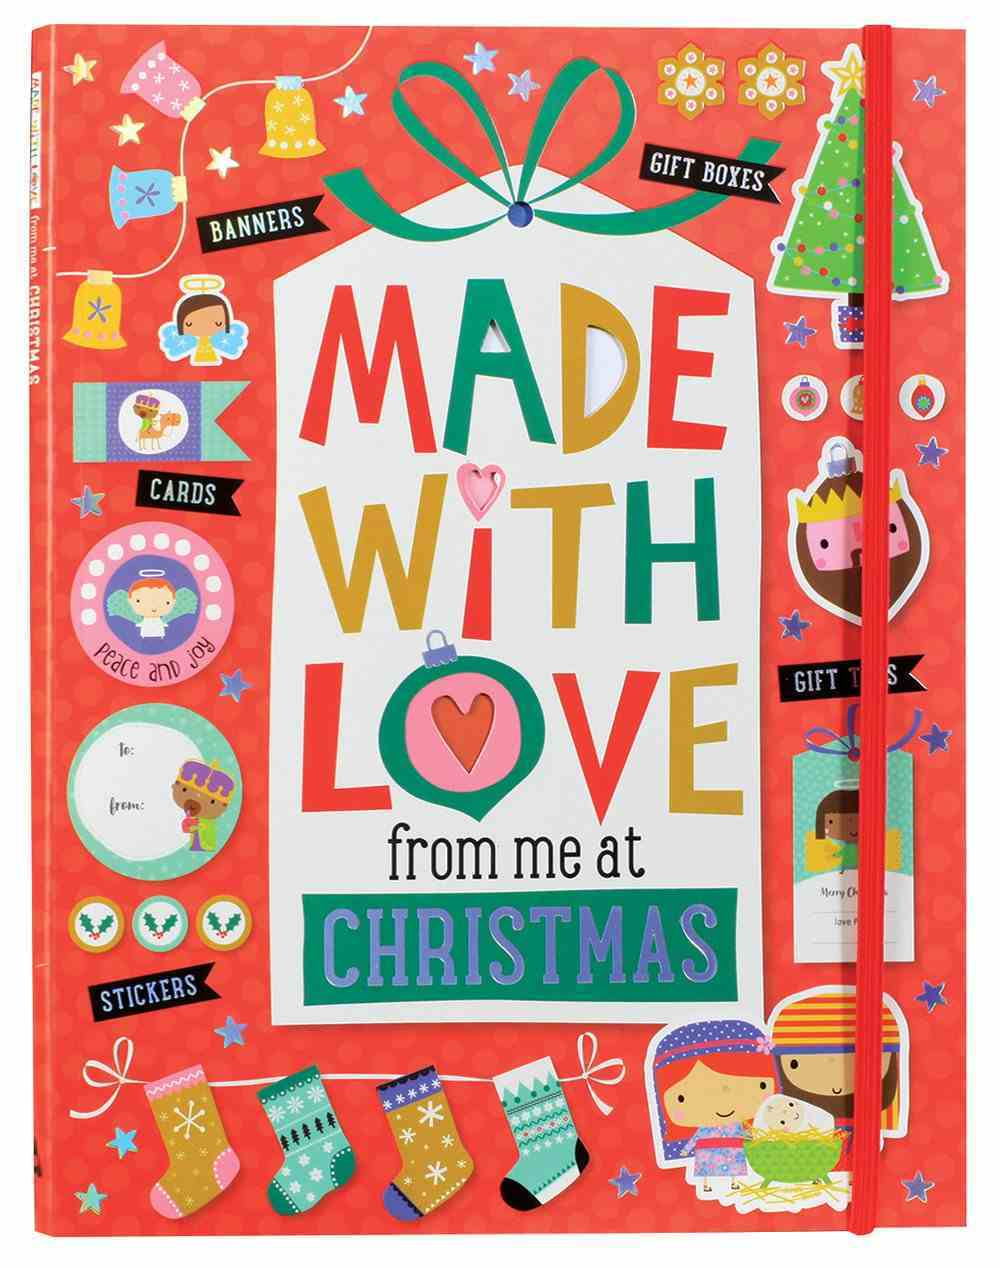 Made With Love From Me At Christmas Ages 6+ (Collection Of Cards, Tage, Notes, Stickers And Gift Boxes) Paperback